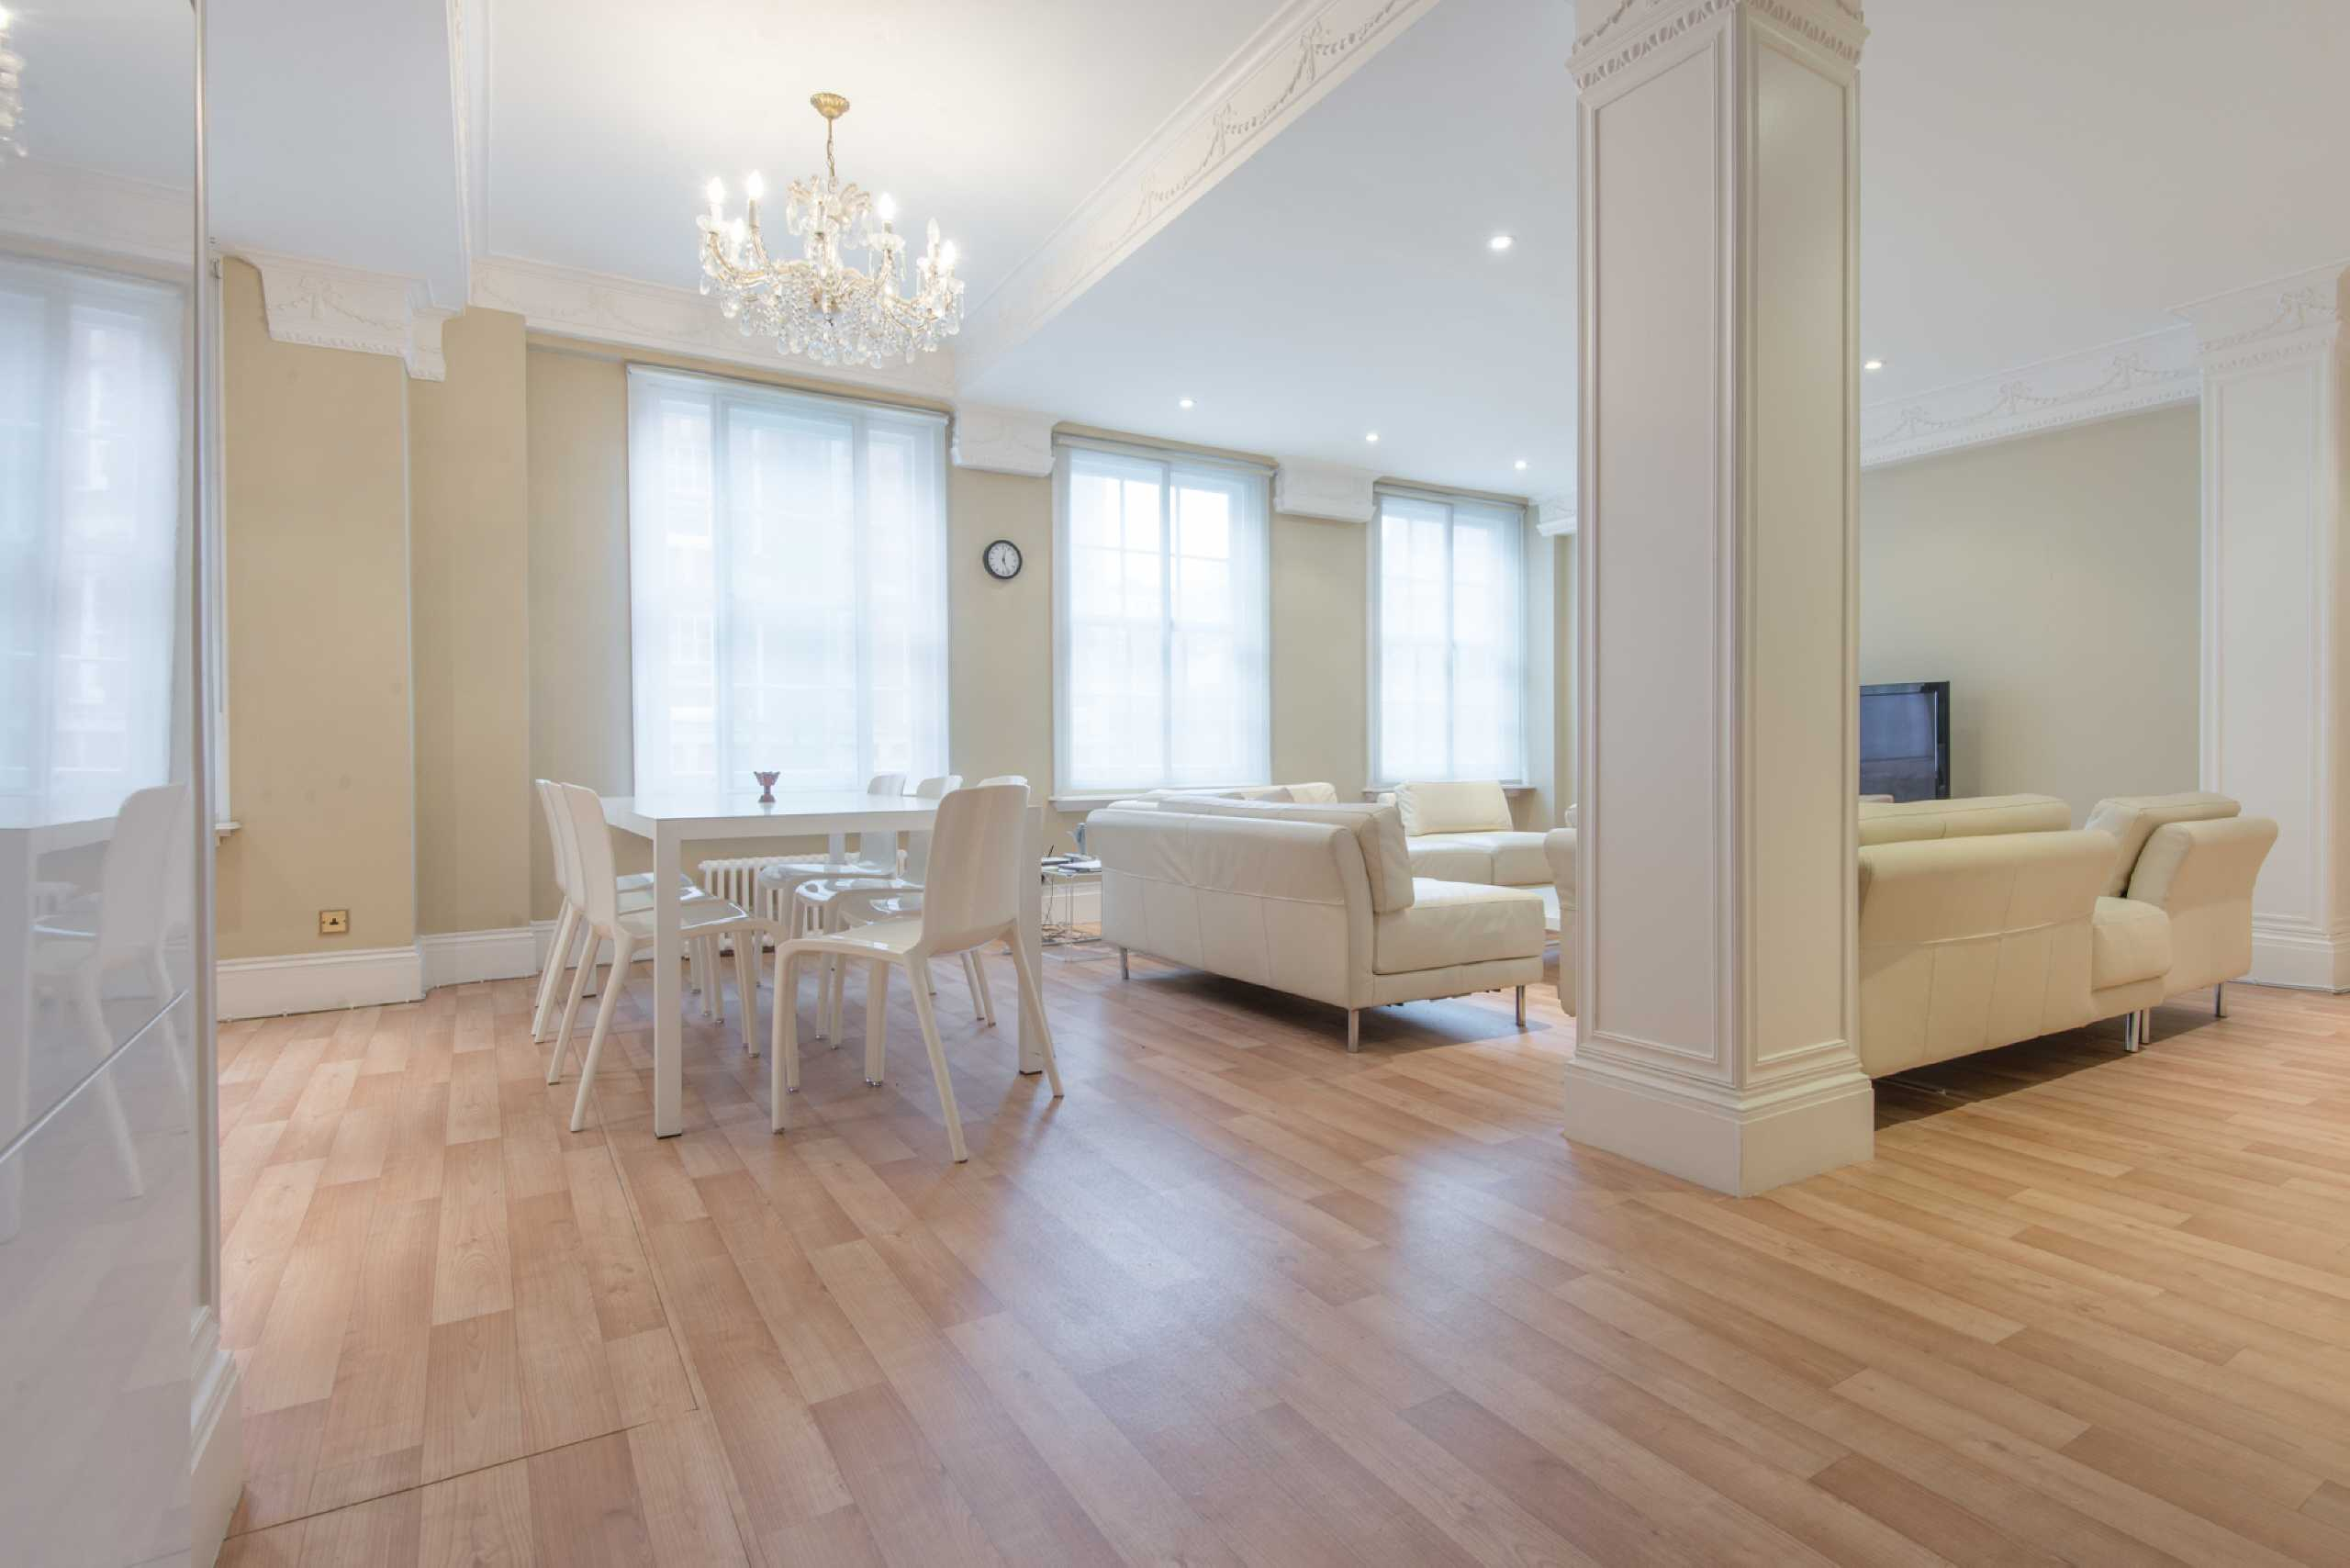 4 Bedrooms Apartment Flat for sale in Bryanston Court, George Street, Marylebone, London, W1H